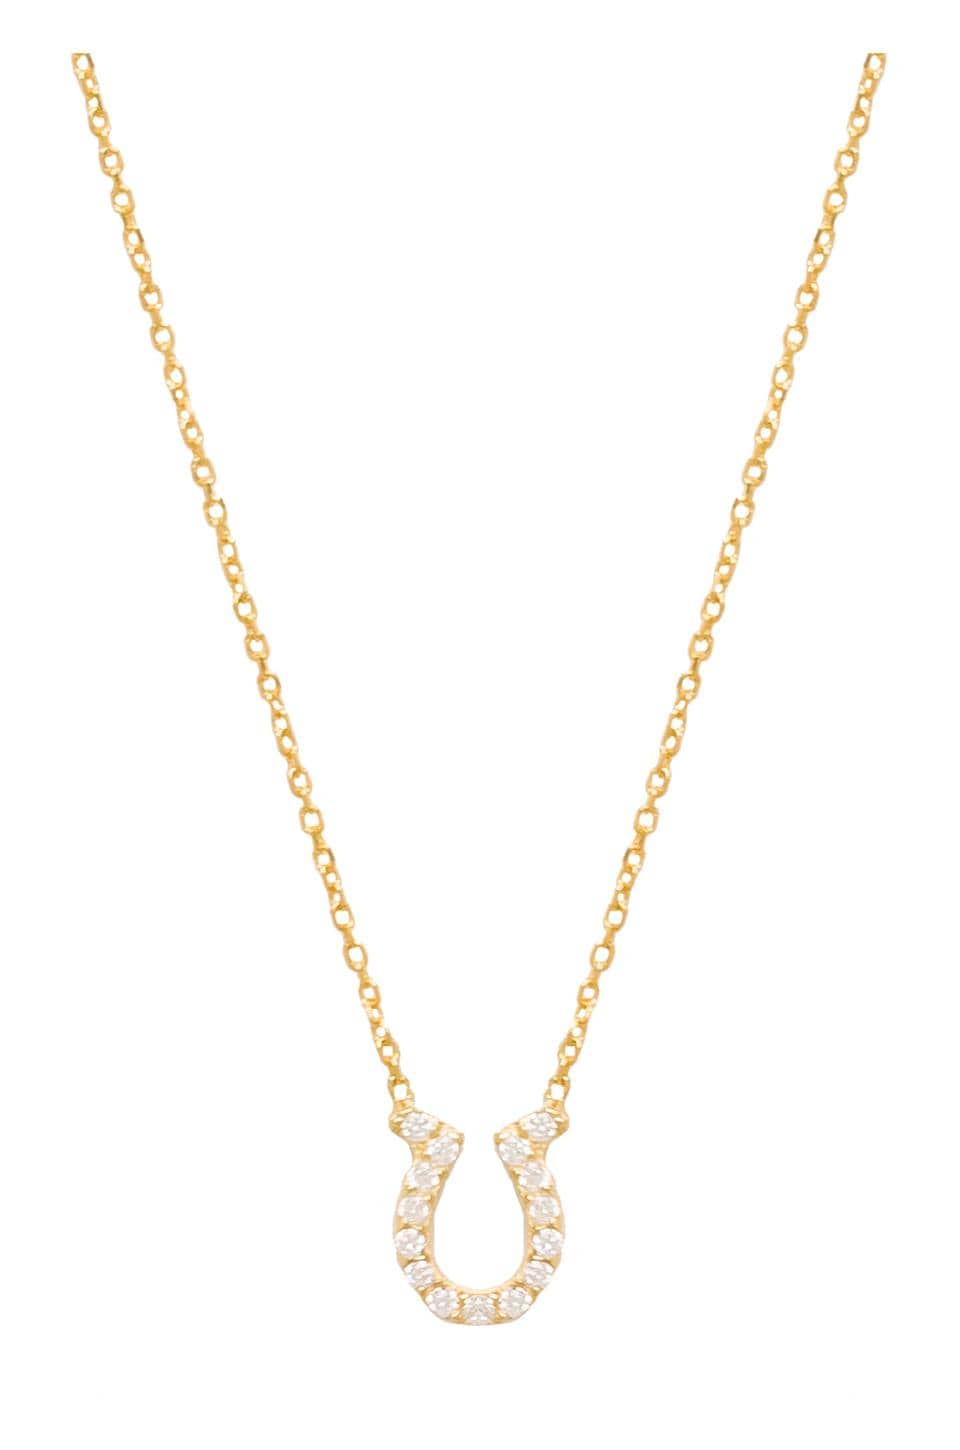 Natalie B Jewelry Horseshoe Necklace in Gold